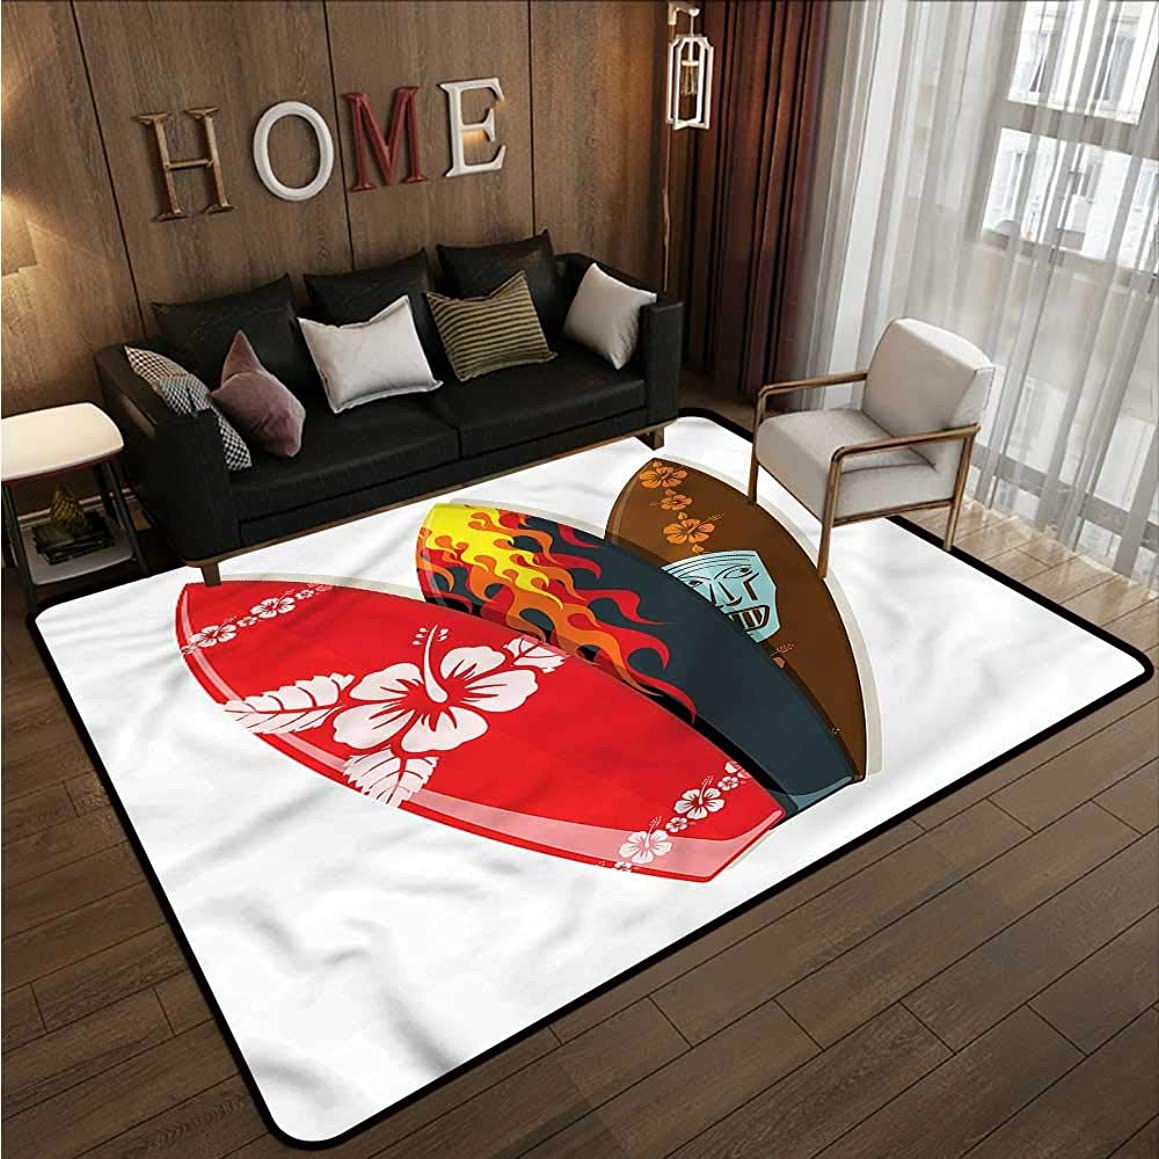 Kids Rug Surfboard Hawaiian Patterns Tropics Anti-Slip Doormat Footpad Machine Washable 5'10